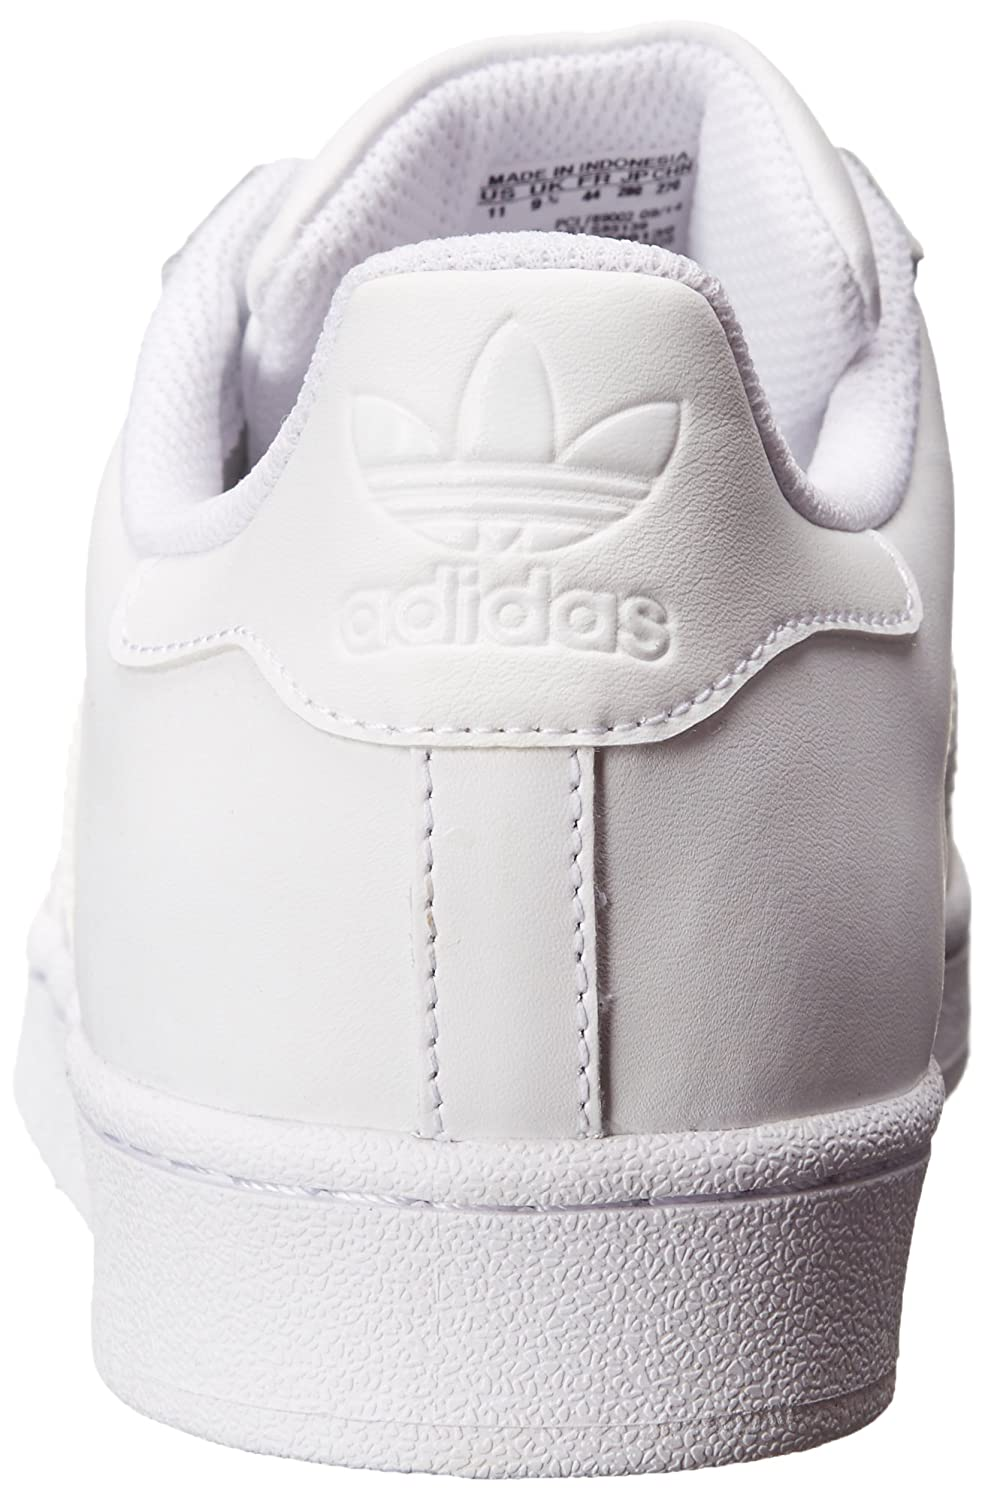 Adidas-Superstar-Women-039-s-Fashion-Casual-Sneakers-Athletic-Shoes-Originals thumbnail 57